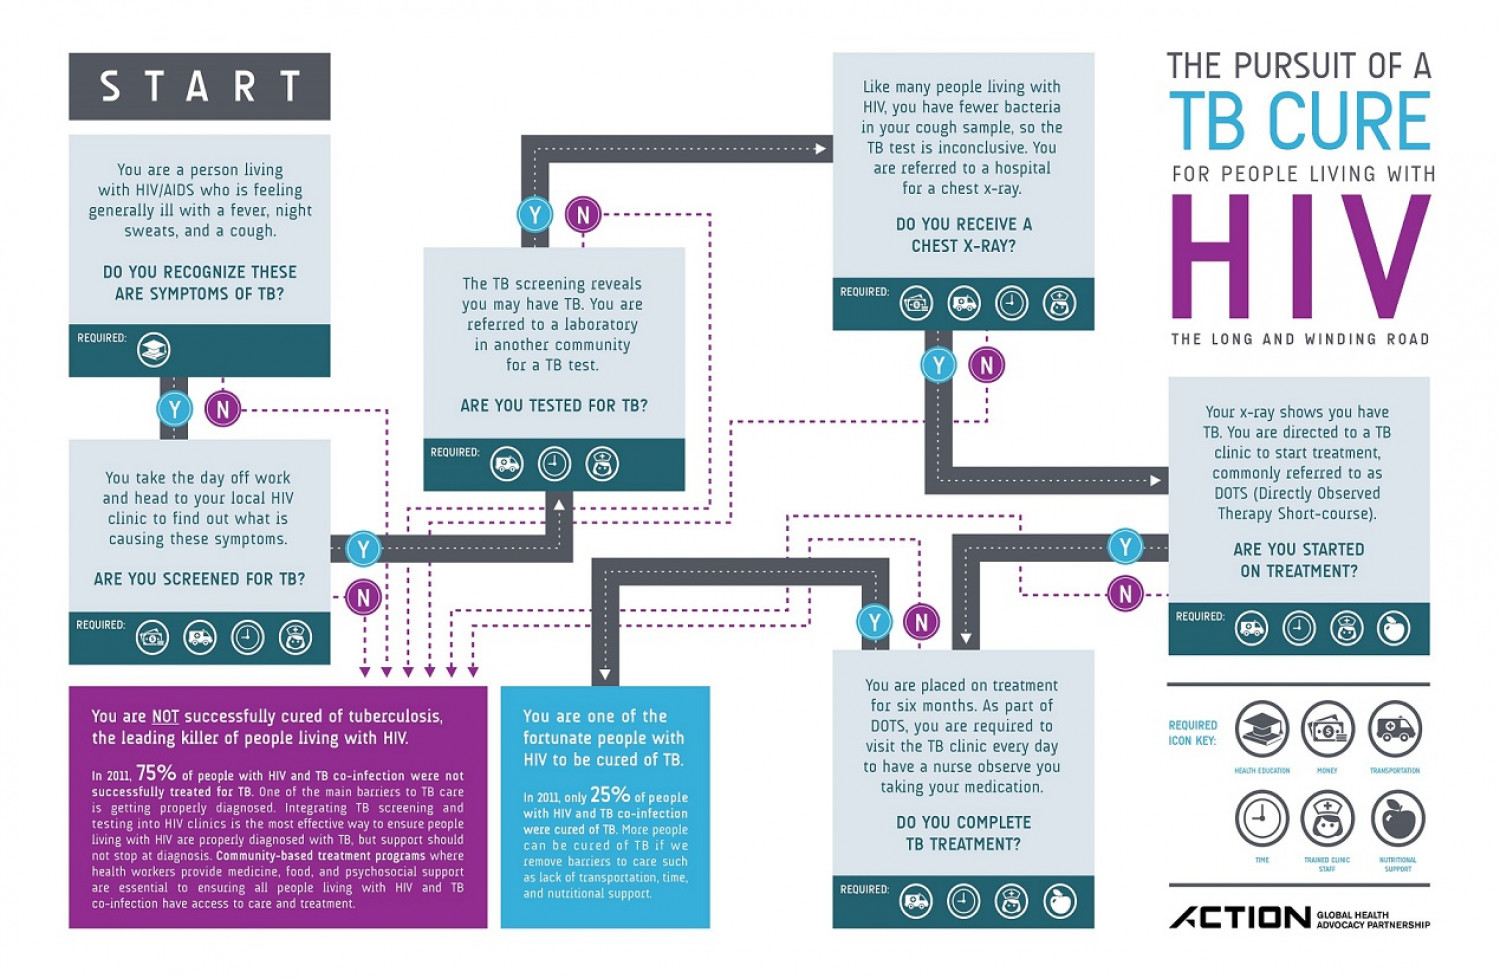 A Long and Winding Road: The Pursuit of a TB Cure for People Living with HIV Infographic